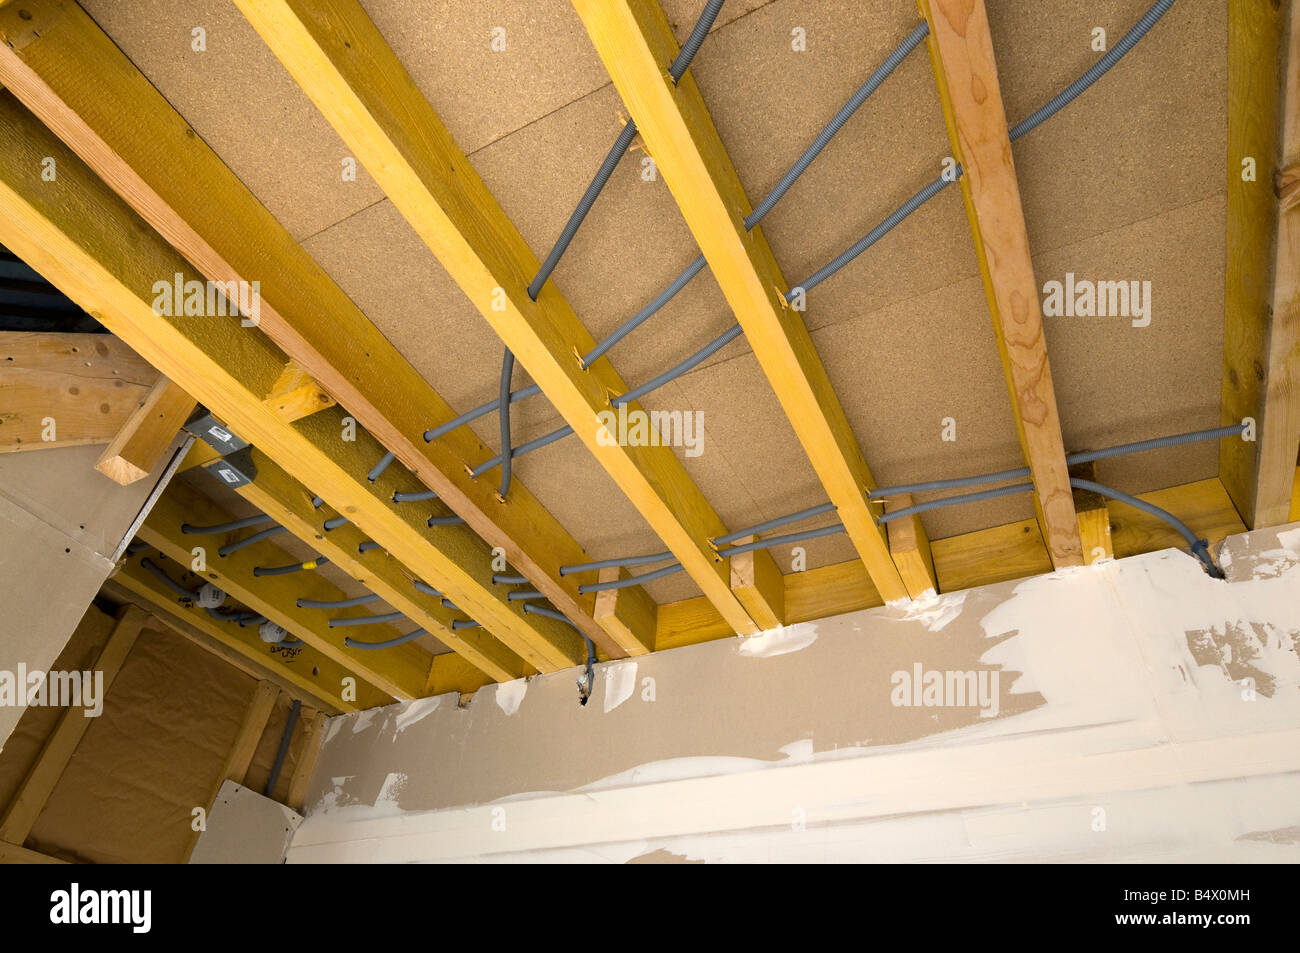 ceiling joists stockfotos ceiling joists bilder alamy. Black Bedroom Furniture Sets. Home Design Ideas